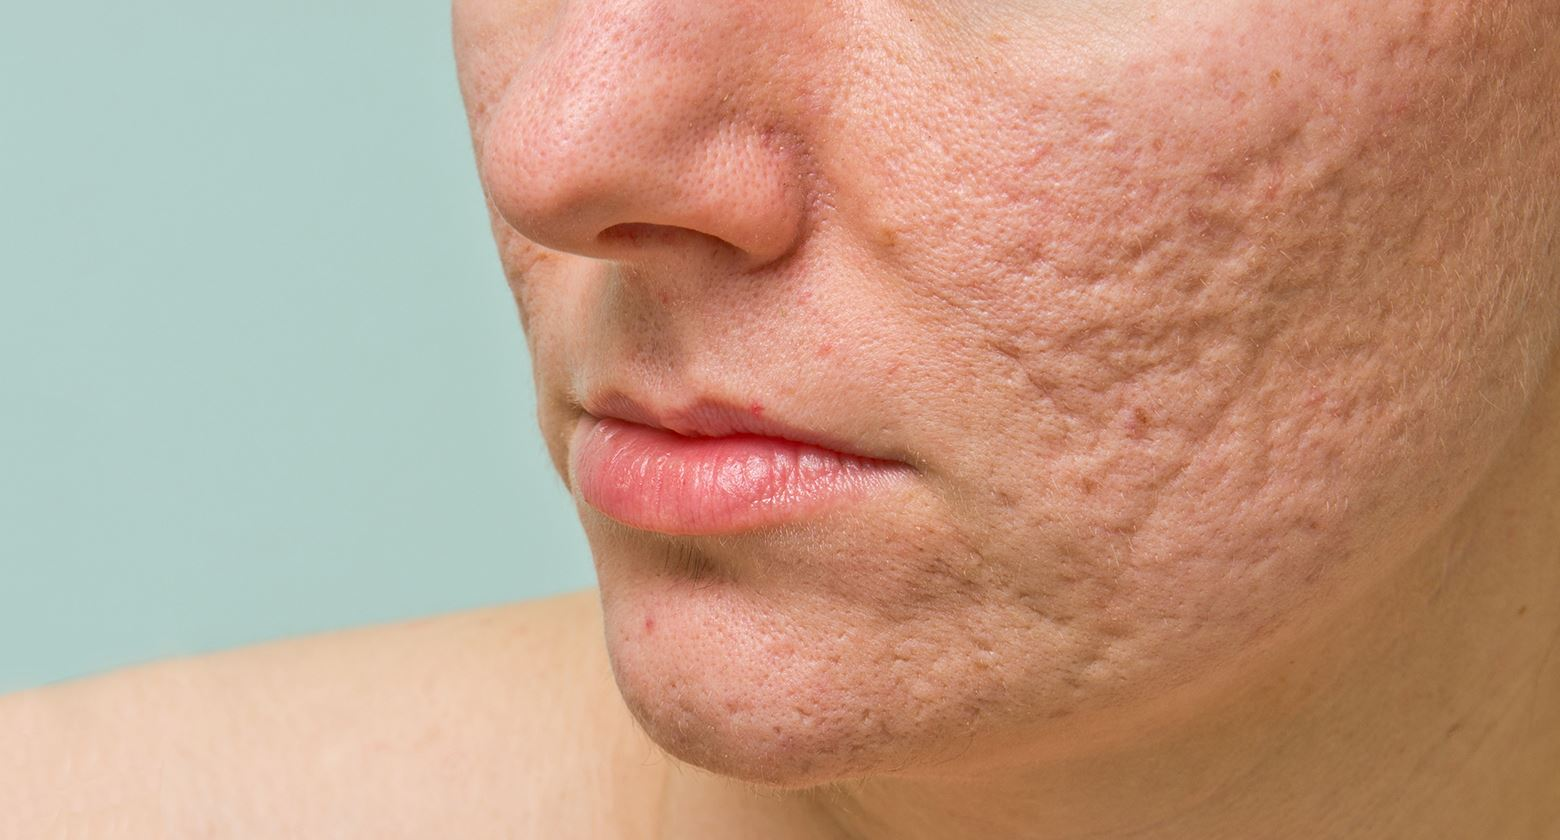 acne scar treatment in chennai